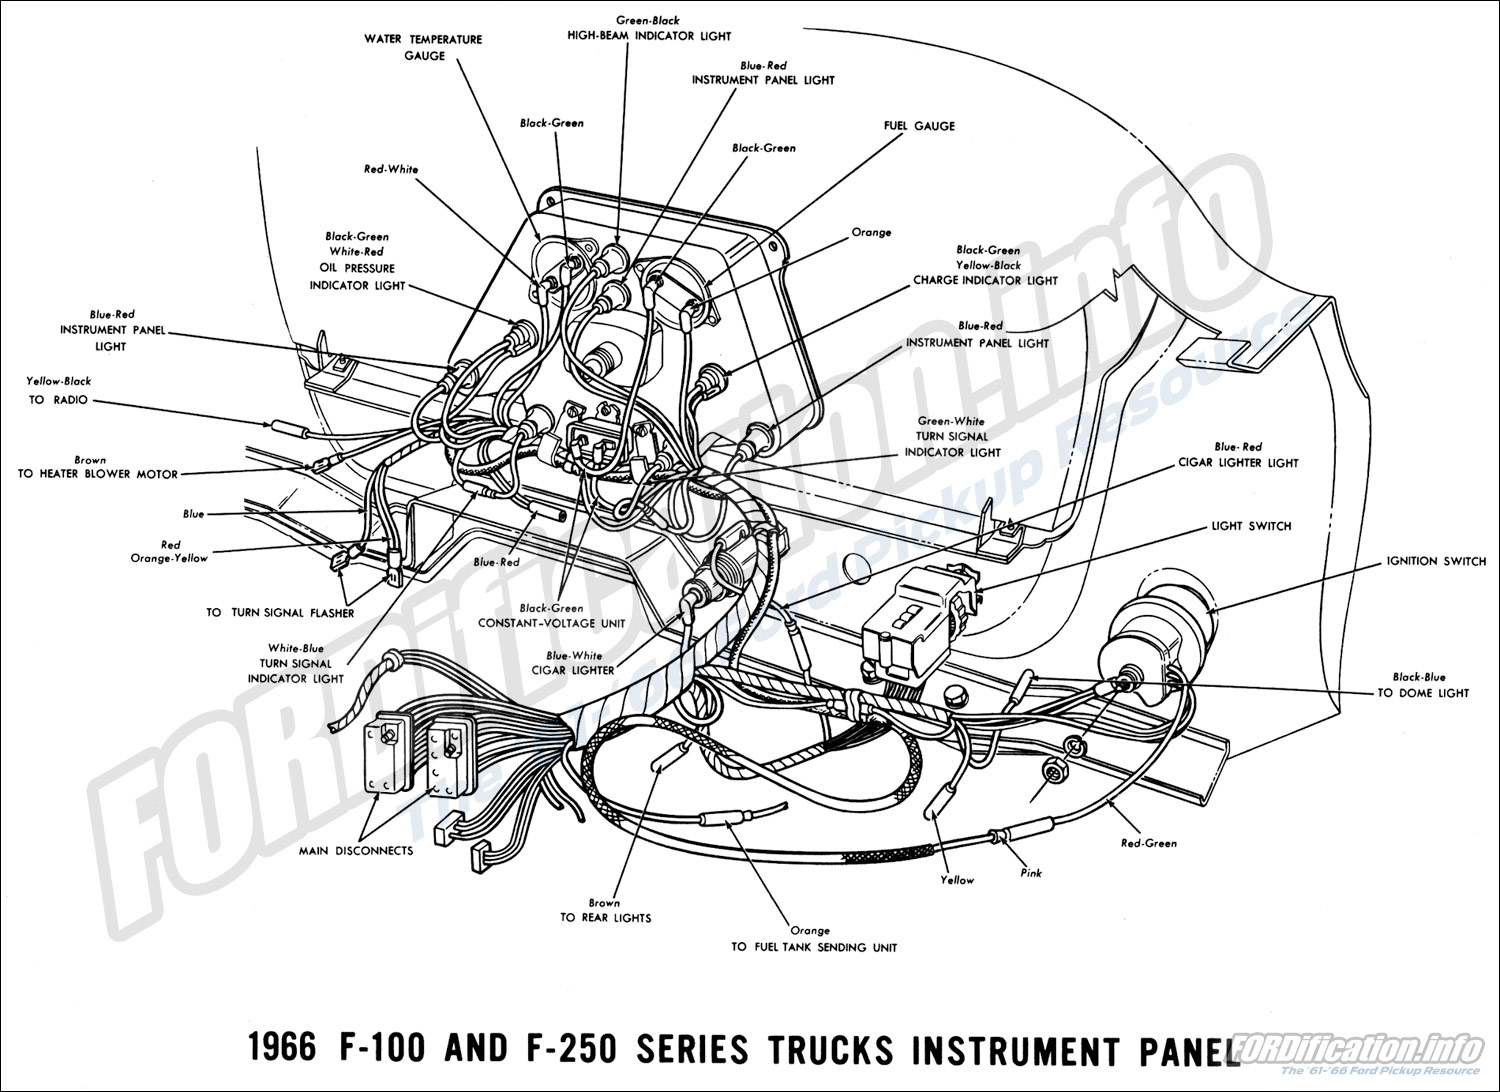 pollak ignition switch wiring diagram 1996 land rover discovery radio 5237133 worksheet and library rh 40 fulldiabetescare org